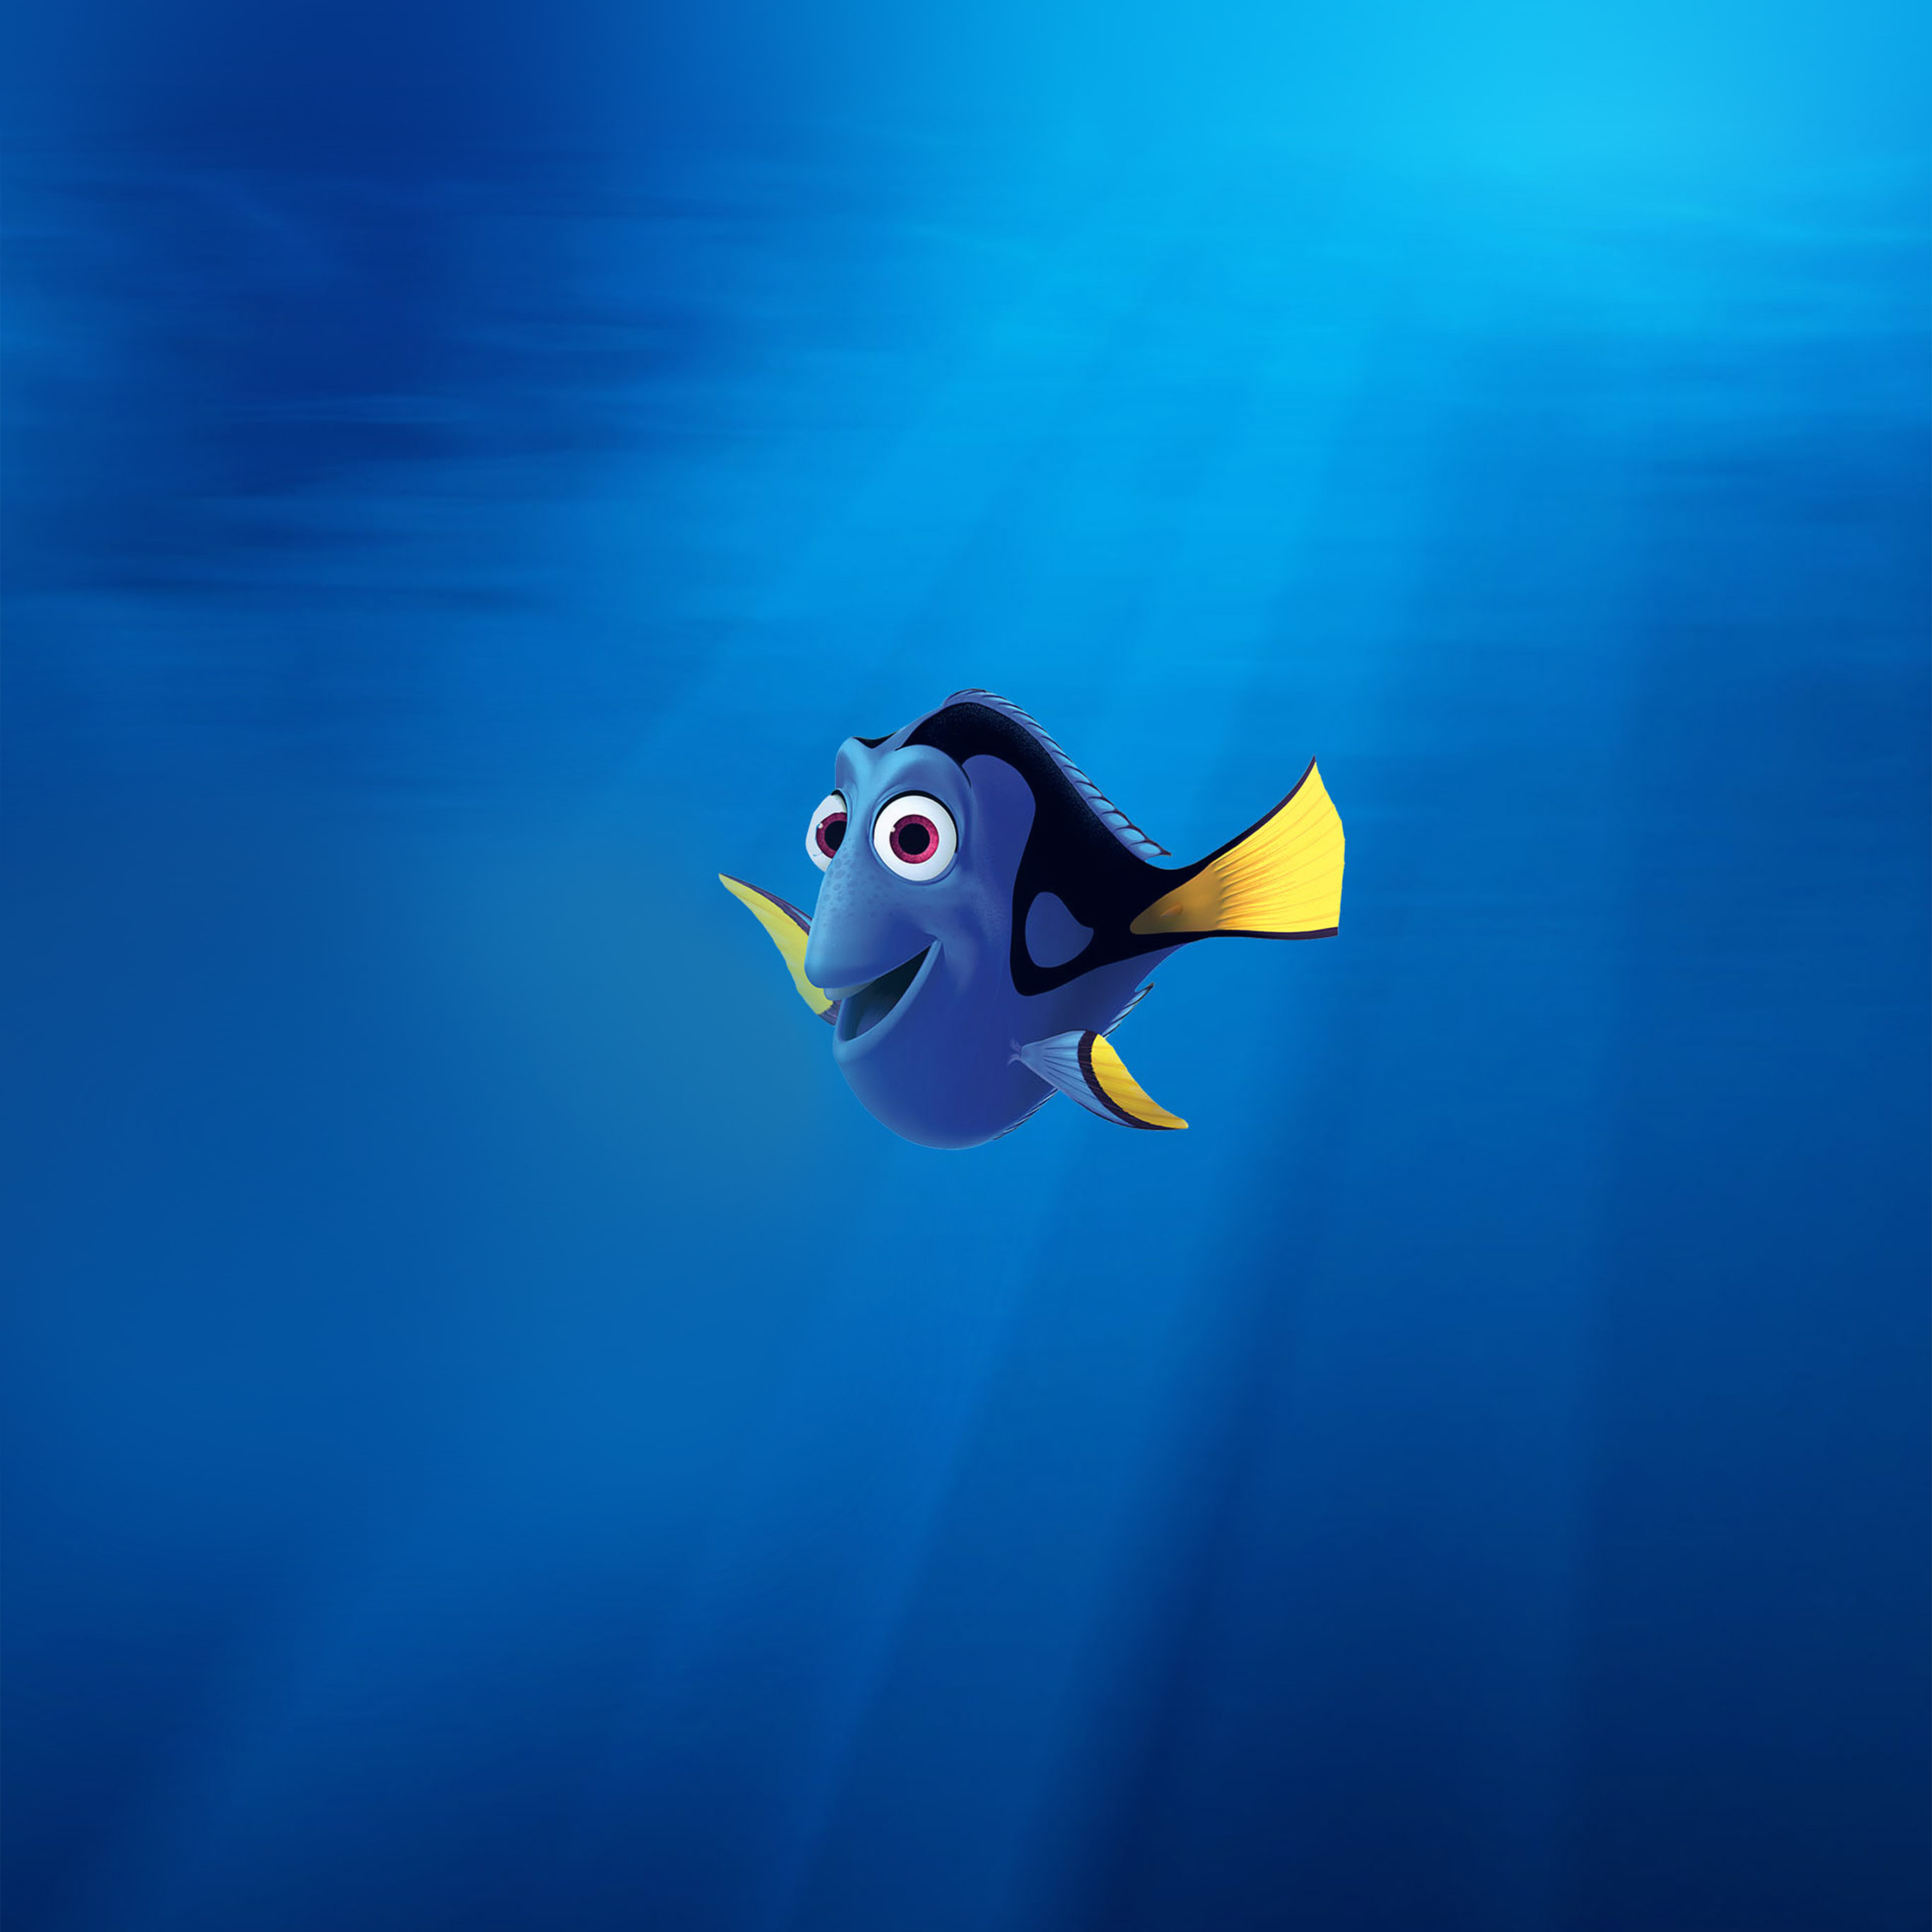 Cute Small Baby Wallpapers Aq99 Finding Nemo Dory Disney Art Wallpaper